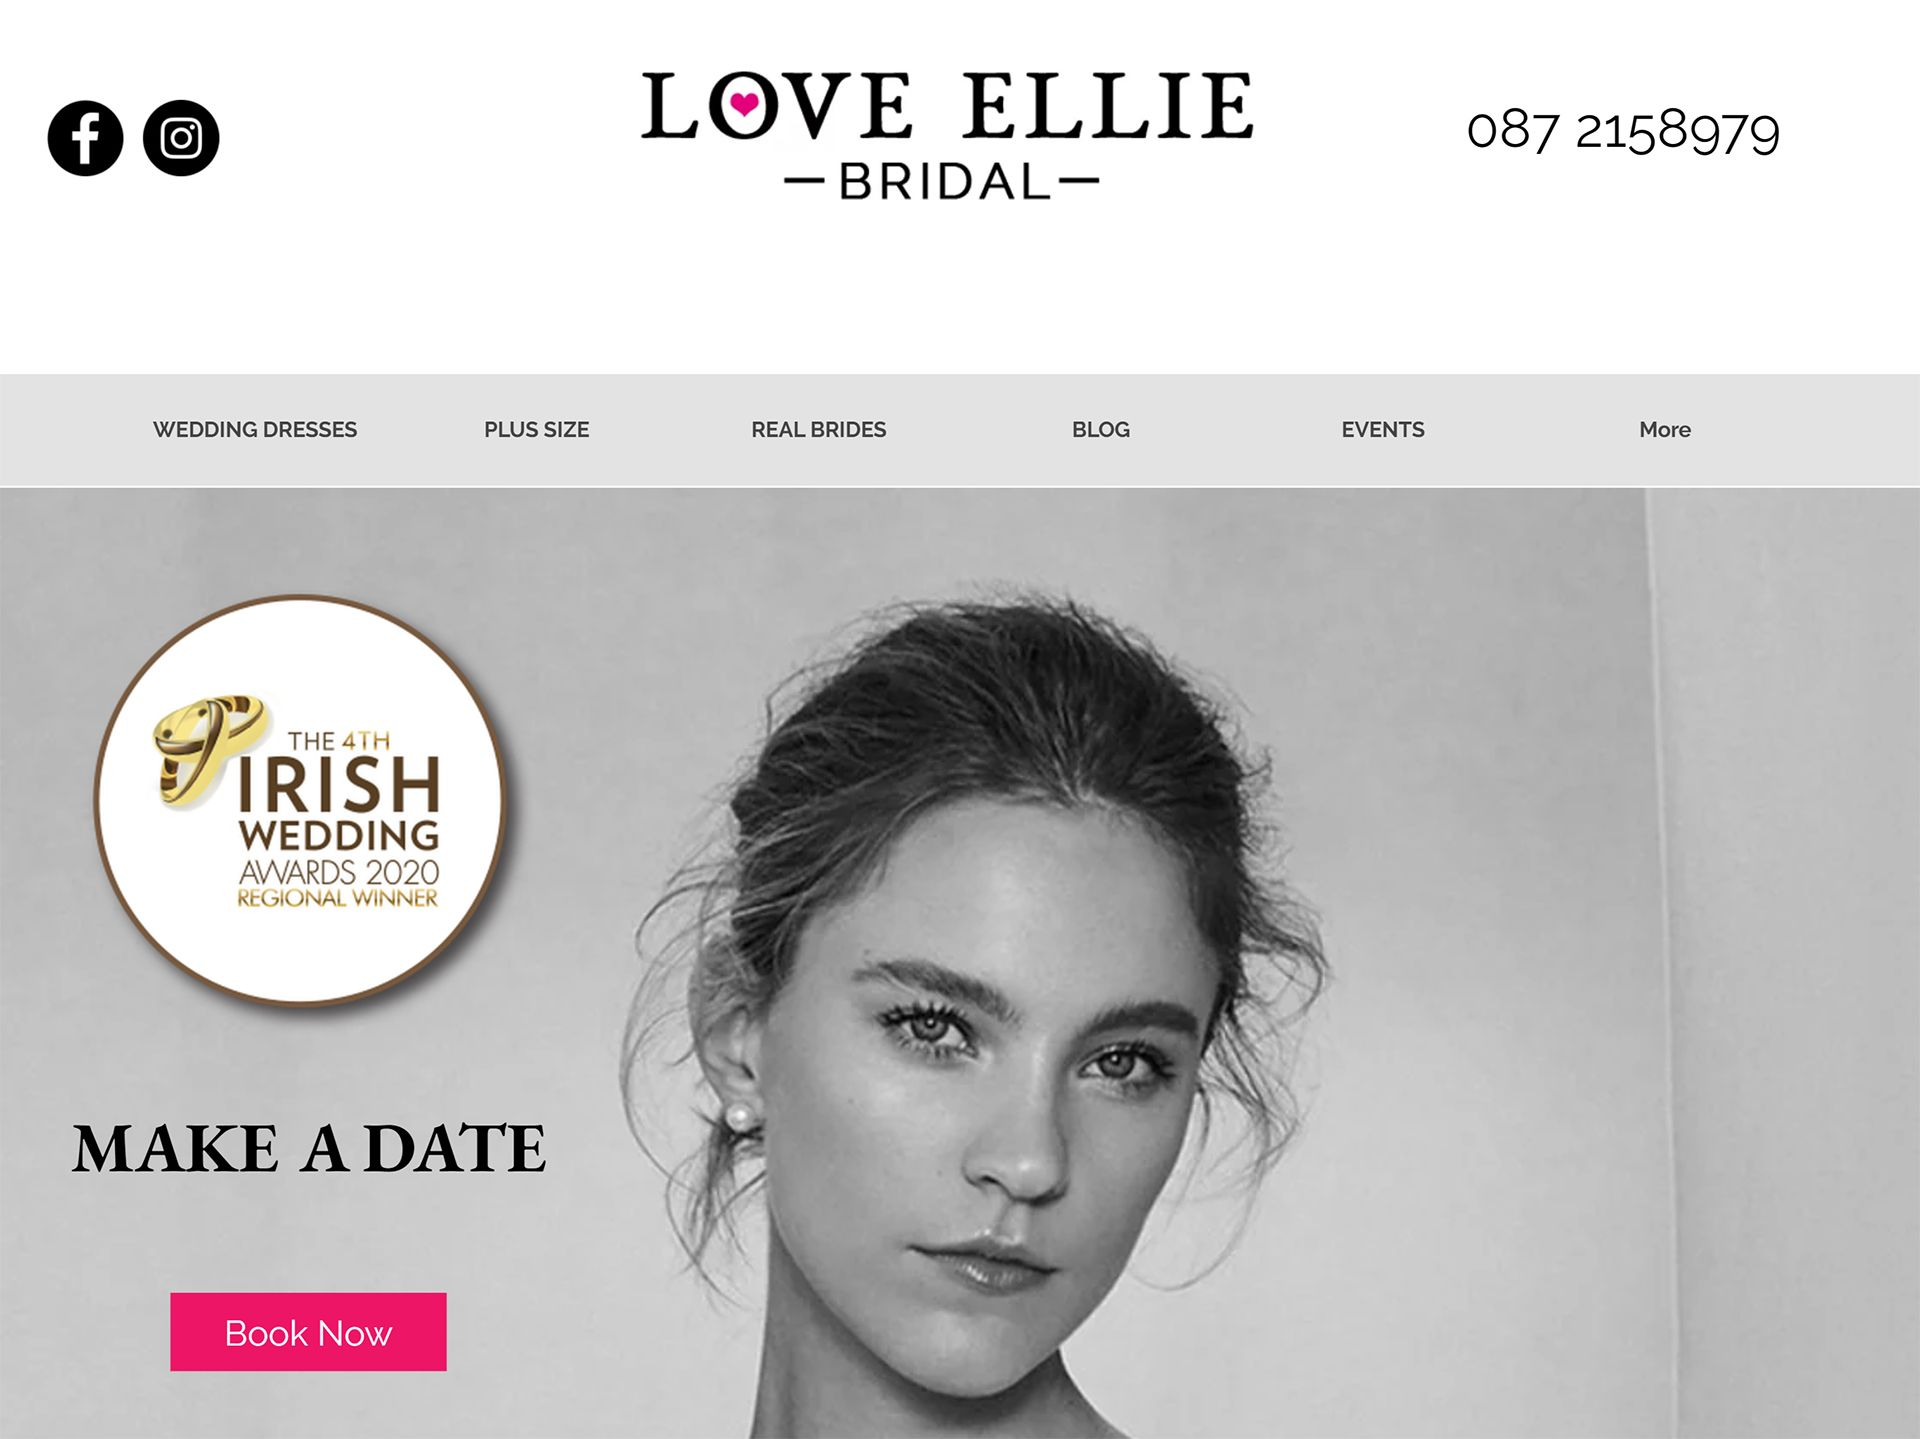 Love Ellie Bridal